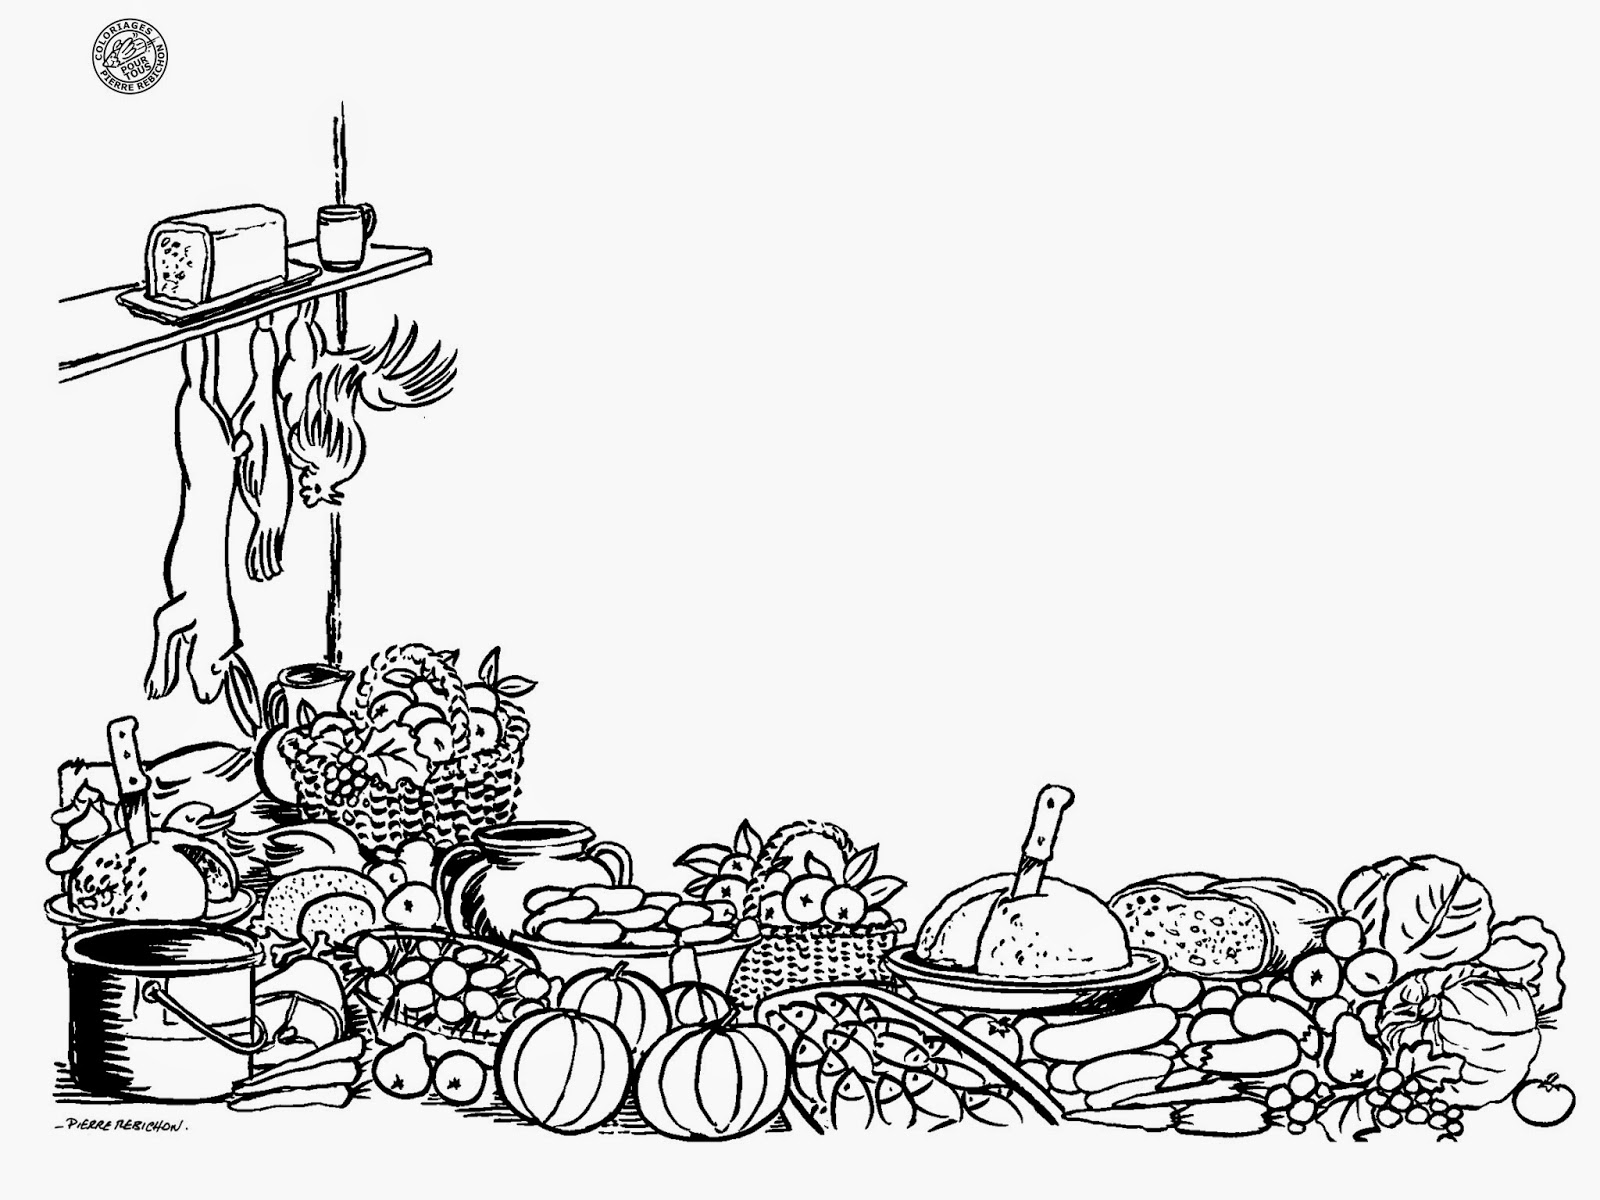 Coloriage nature printemps liberate - Image nature morte imprimer ...